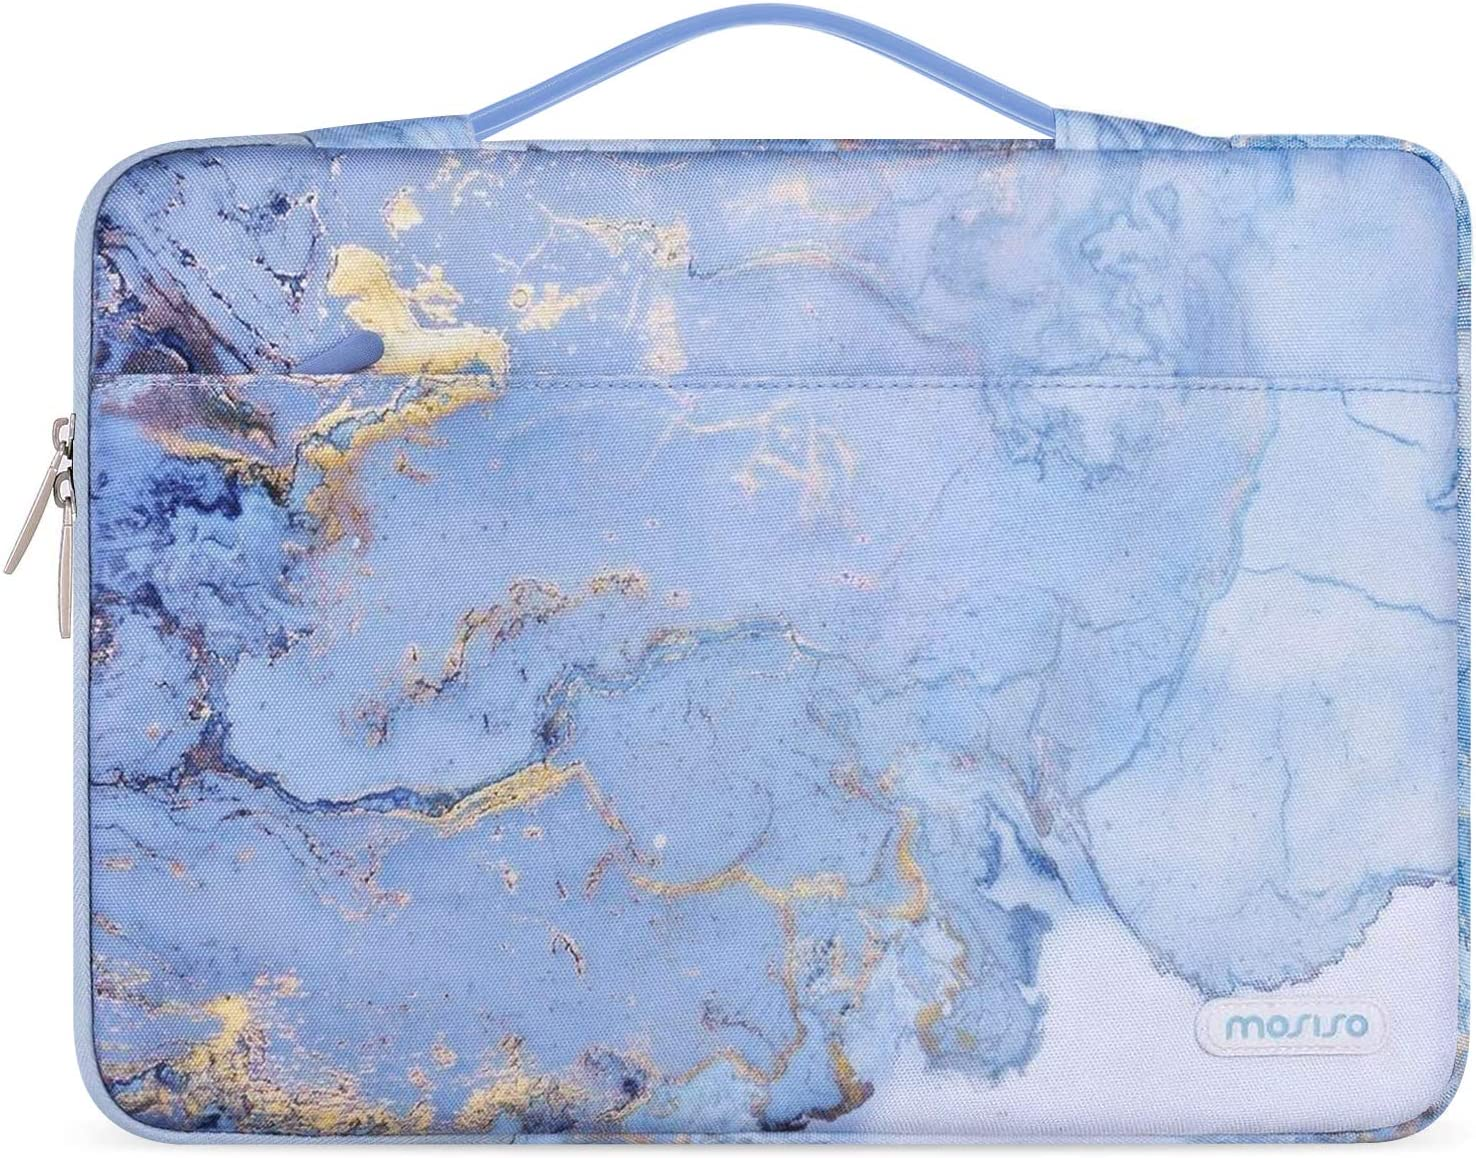 MOSISO Laptop Sleeve 360 Protective Case Bag Compatible with 13-13.3 inch MacBook Pro, MacBook Air, Notebook, Polyester Pattern Shockproof Handbag with Trolley Belt, Water Blue Marble